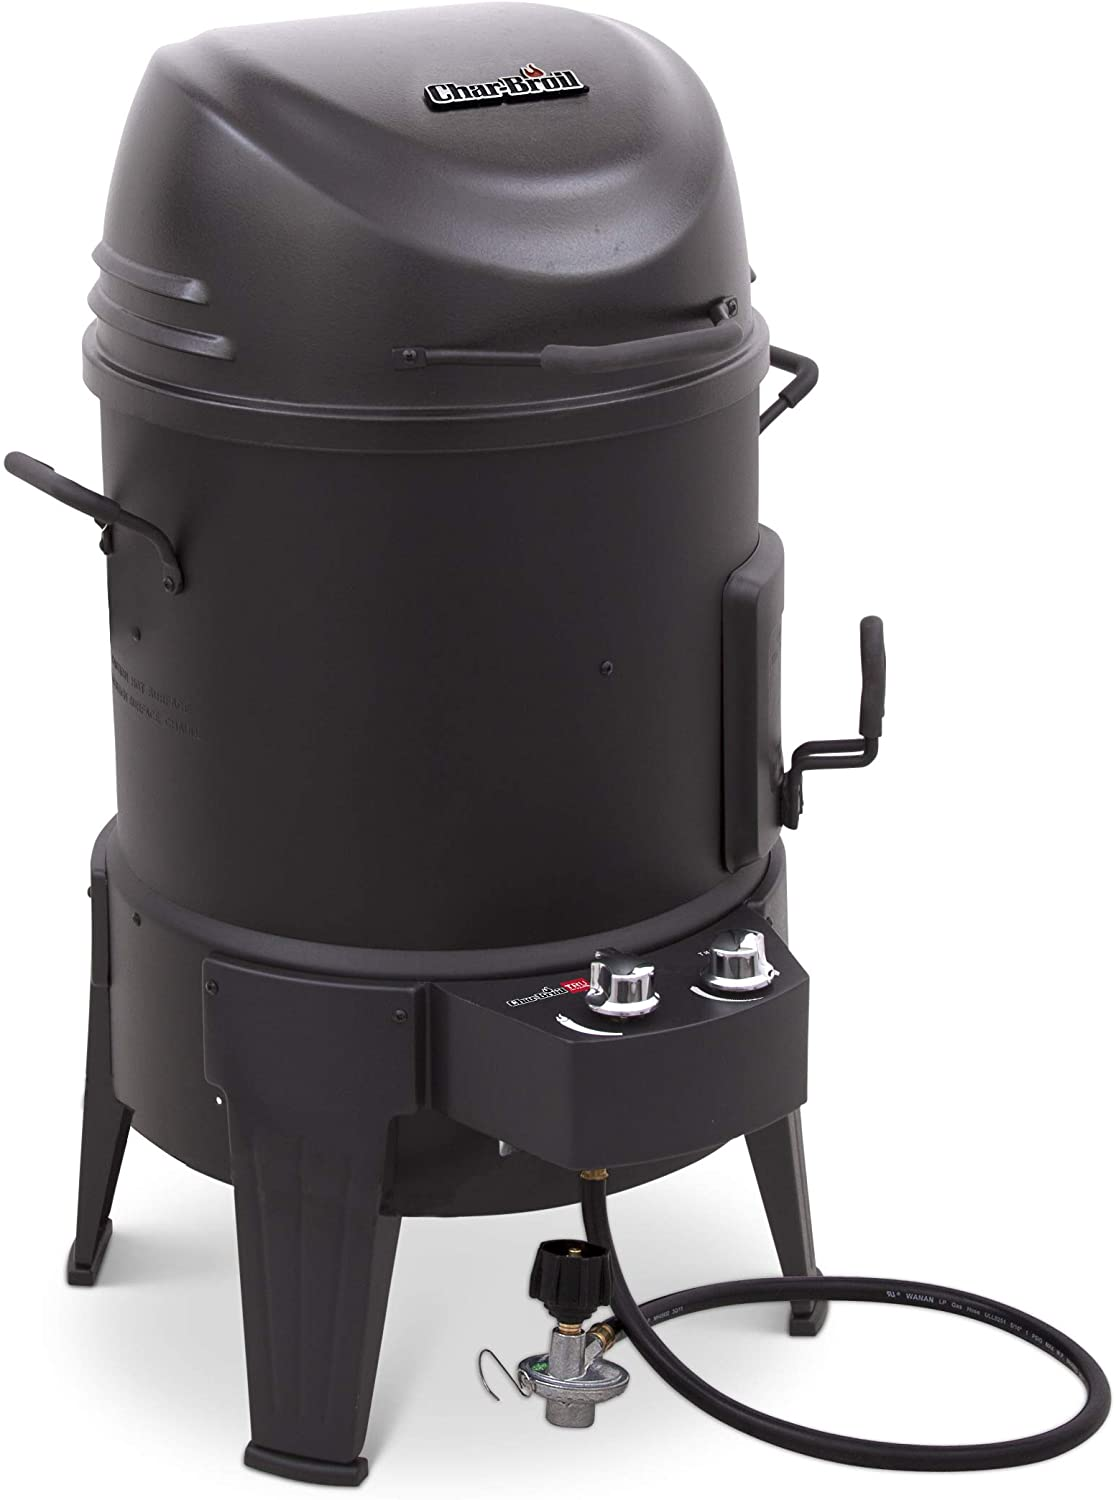 best The Big Easy TRU-Infrared Char-Broil Smoker Roaster & Grill